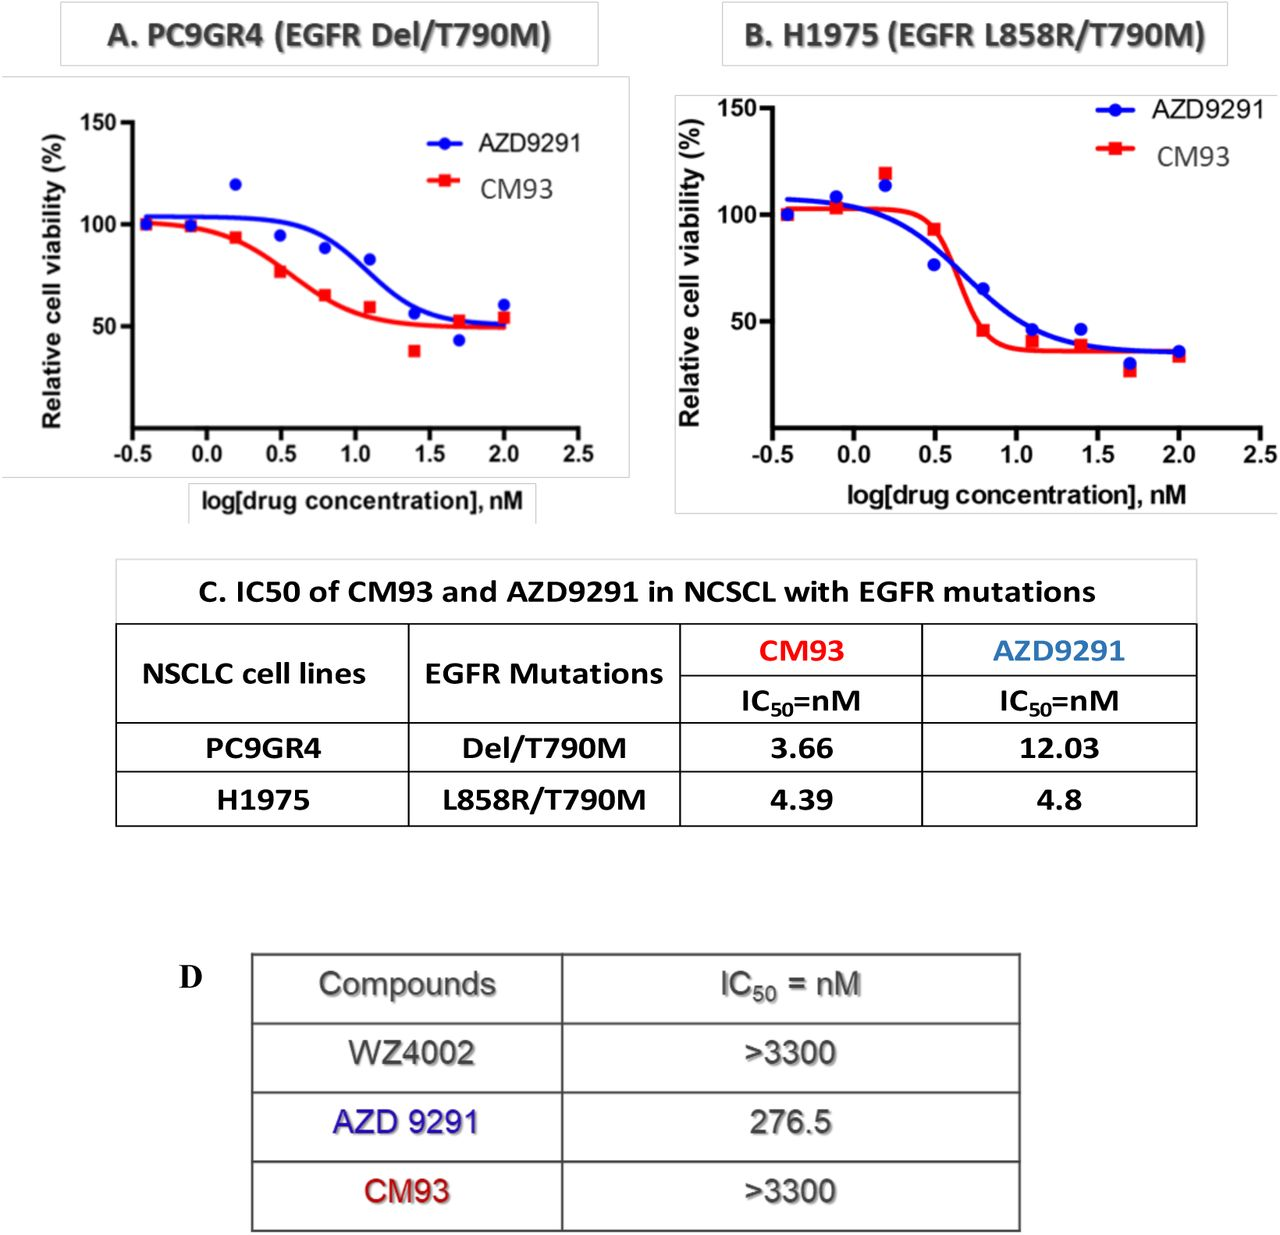 Evaluation of CM93 in EGFR-mutant NSCLC cell lines and wild-type (WT) EGFR-expressing Ba/F3 cells. (A-C) The viability of PC9GR4 (Exon19Del/T790M) and H1975 (L858R/T790M) cells was analyzed by CellTiter Glo following 48 hours treatment with AZD9291 or CM93. (D) CM93 demonstrated minimal inhibitory effects on parental Ba/F3 cells.